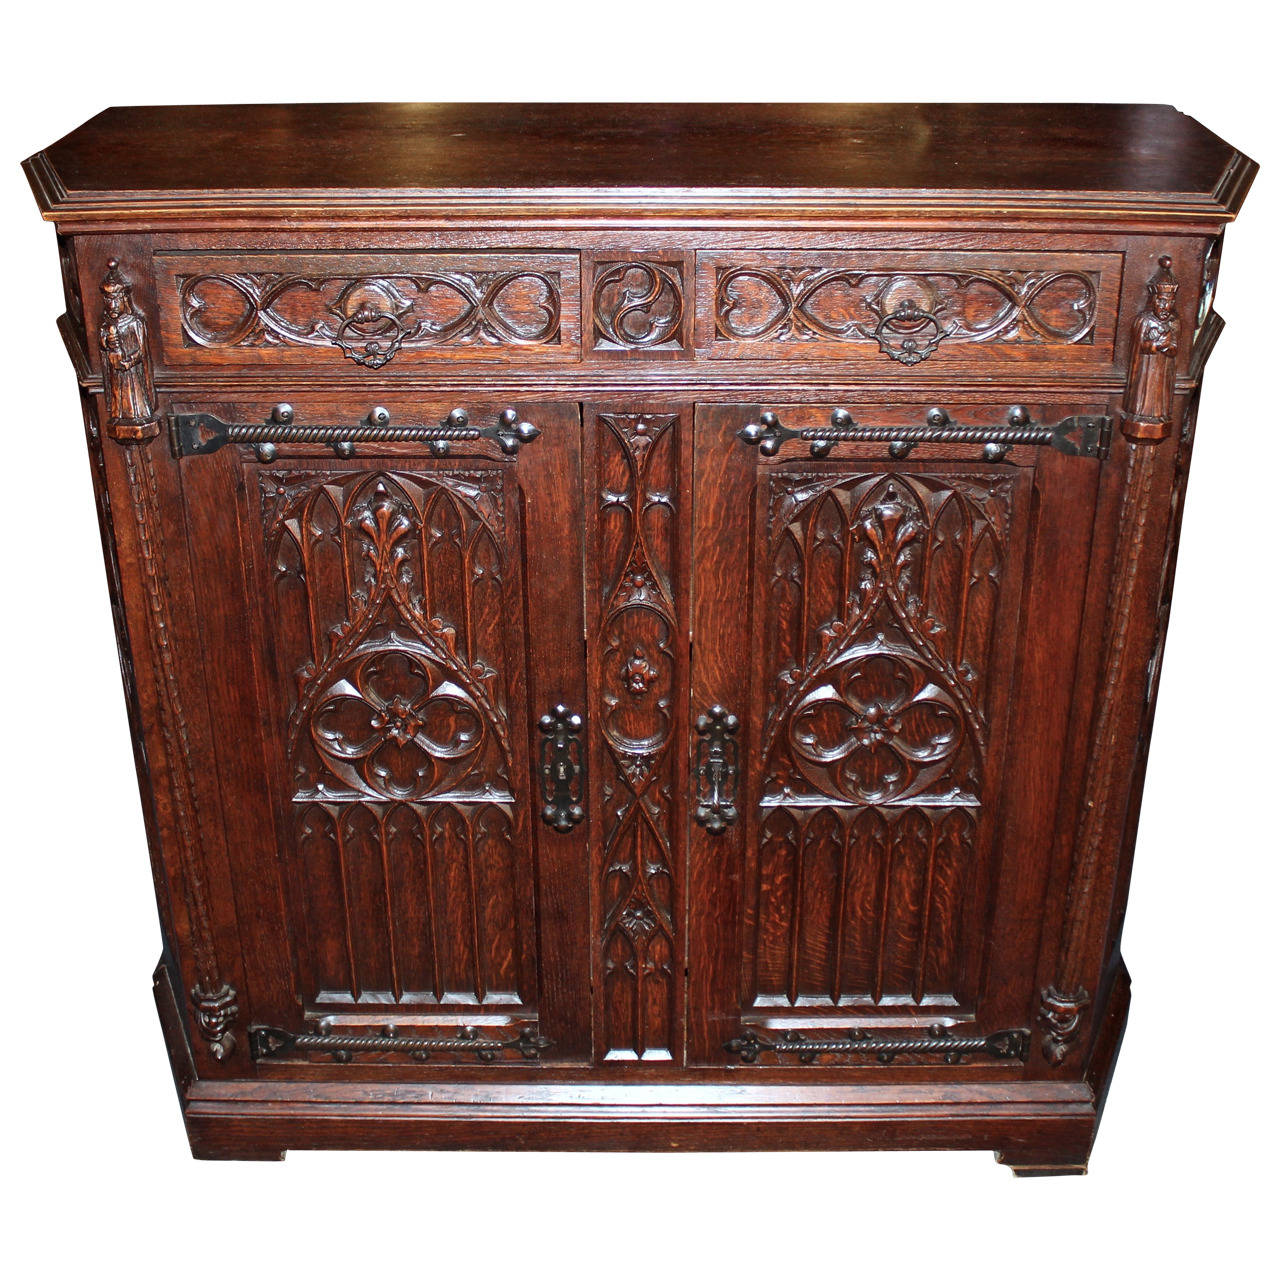 Early 20th Century French Gothic Revival Cabinet At 1stdibs